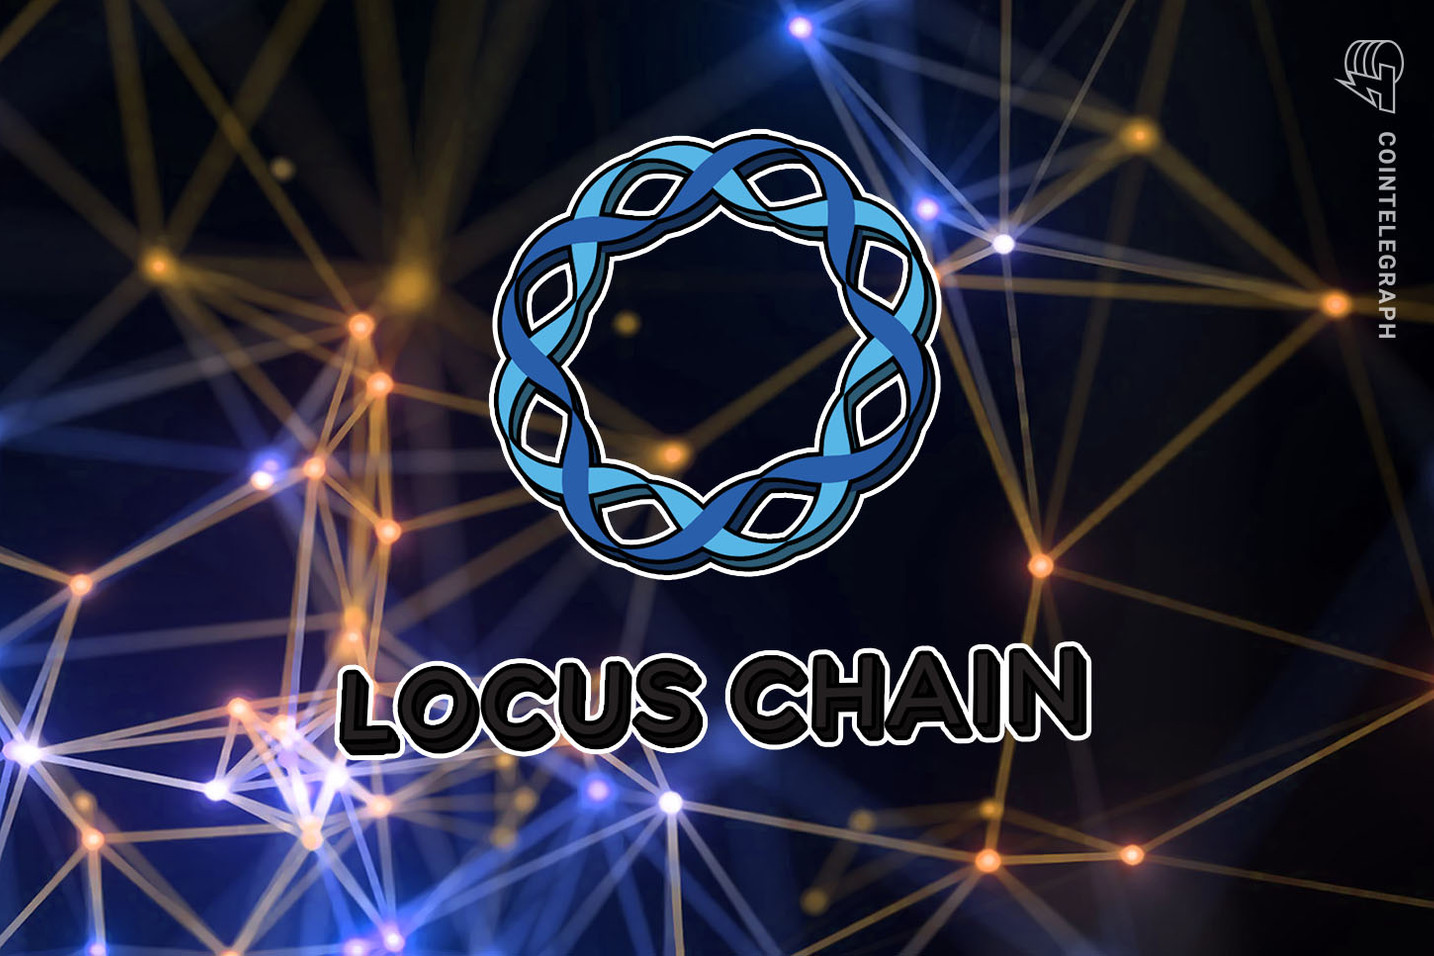 Locus Chain, Harbinger of the Credit Revolution